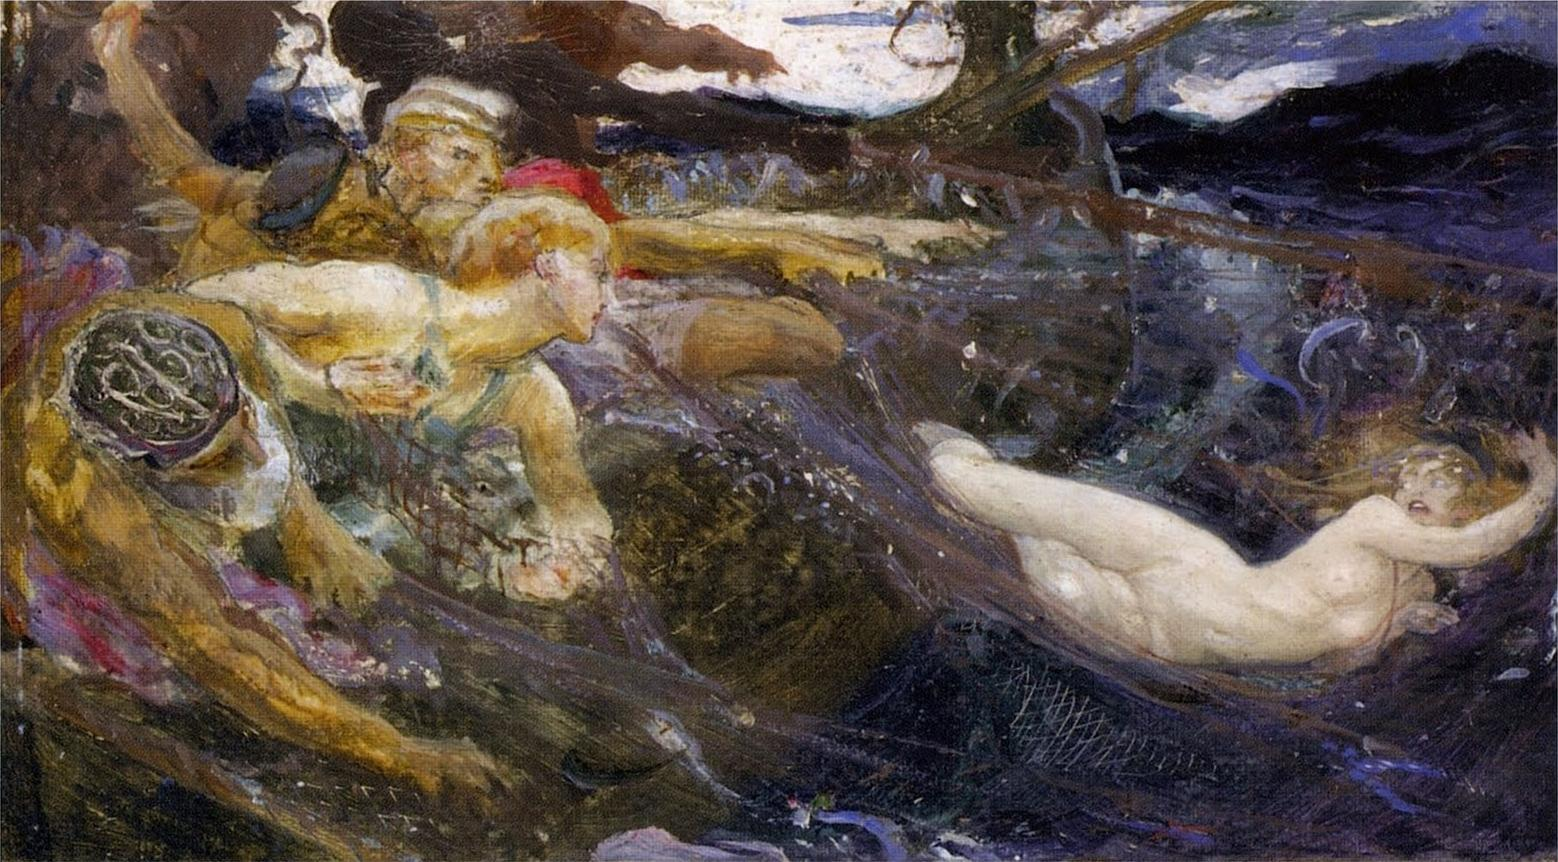 http://upload.wikimedia.org/wikipedia/commons/6/69/Herbert_James_Draper%2C_Oil_Study_for_The_Sea_Maiden.jpg